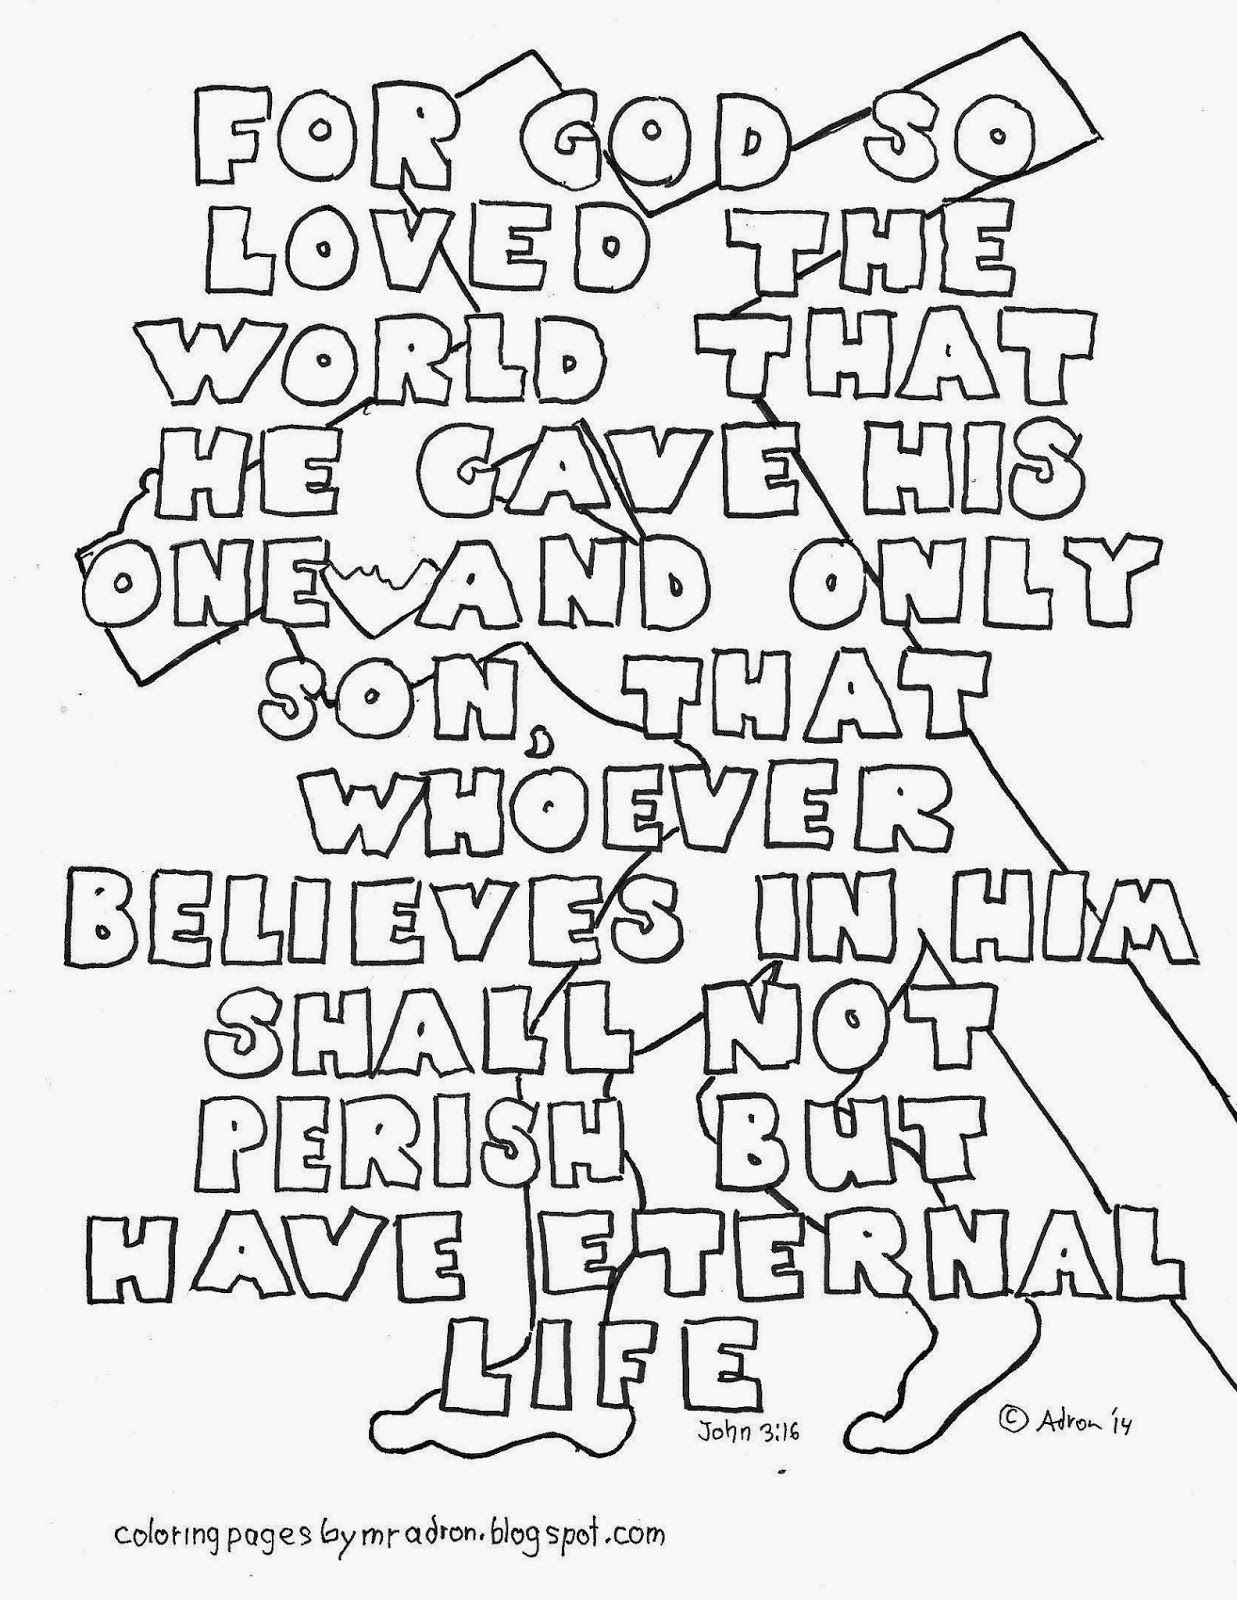 John 3 16 Printable Coloring Page For God So Loved The World That He Gave His On Sunday School Coloring Pages Bible Verse Coloring Bible Verse Coloring Page